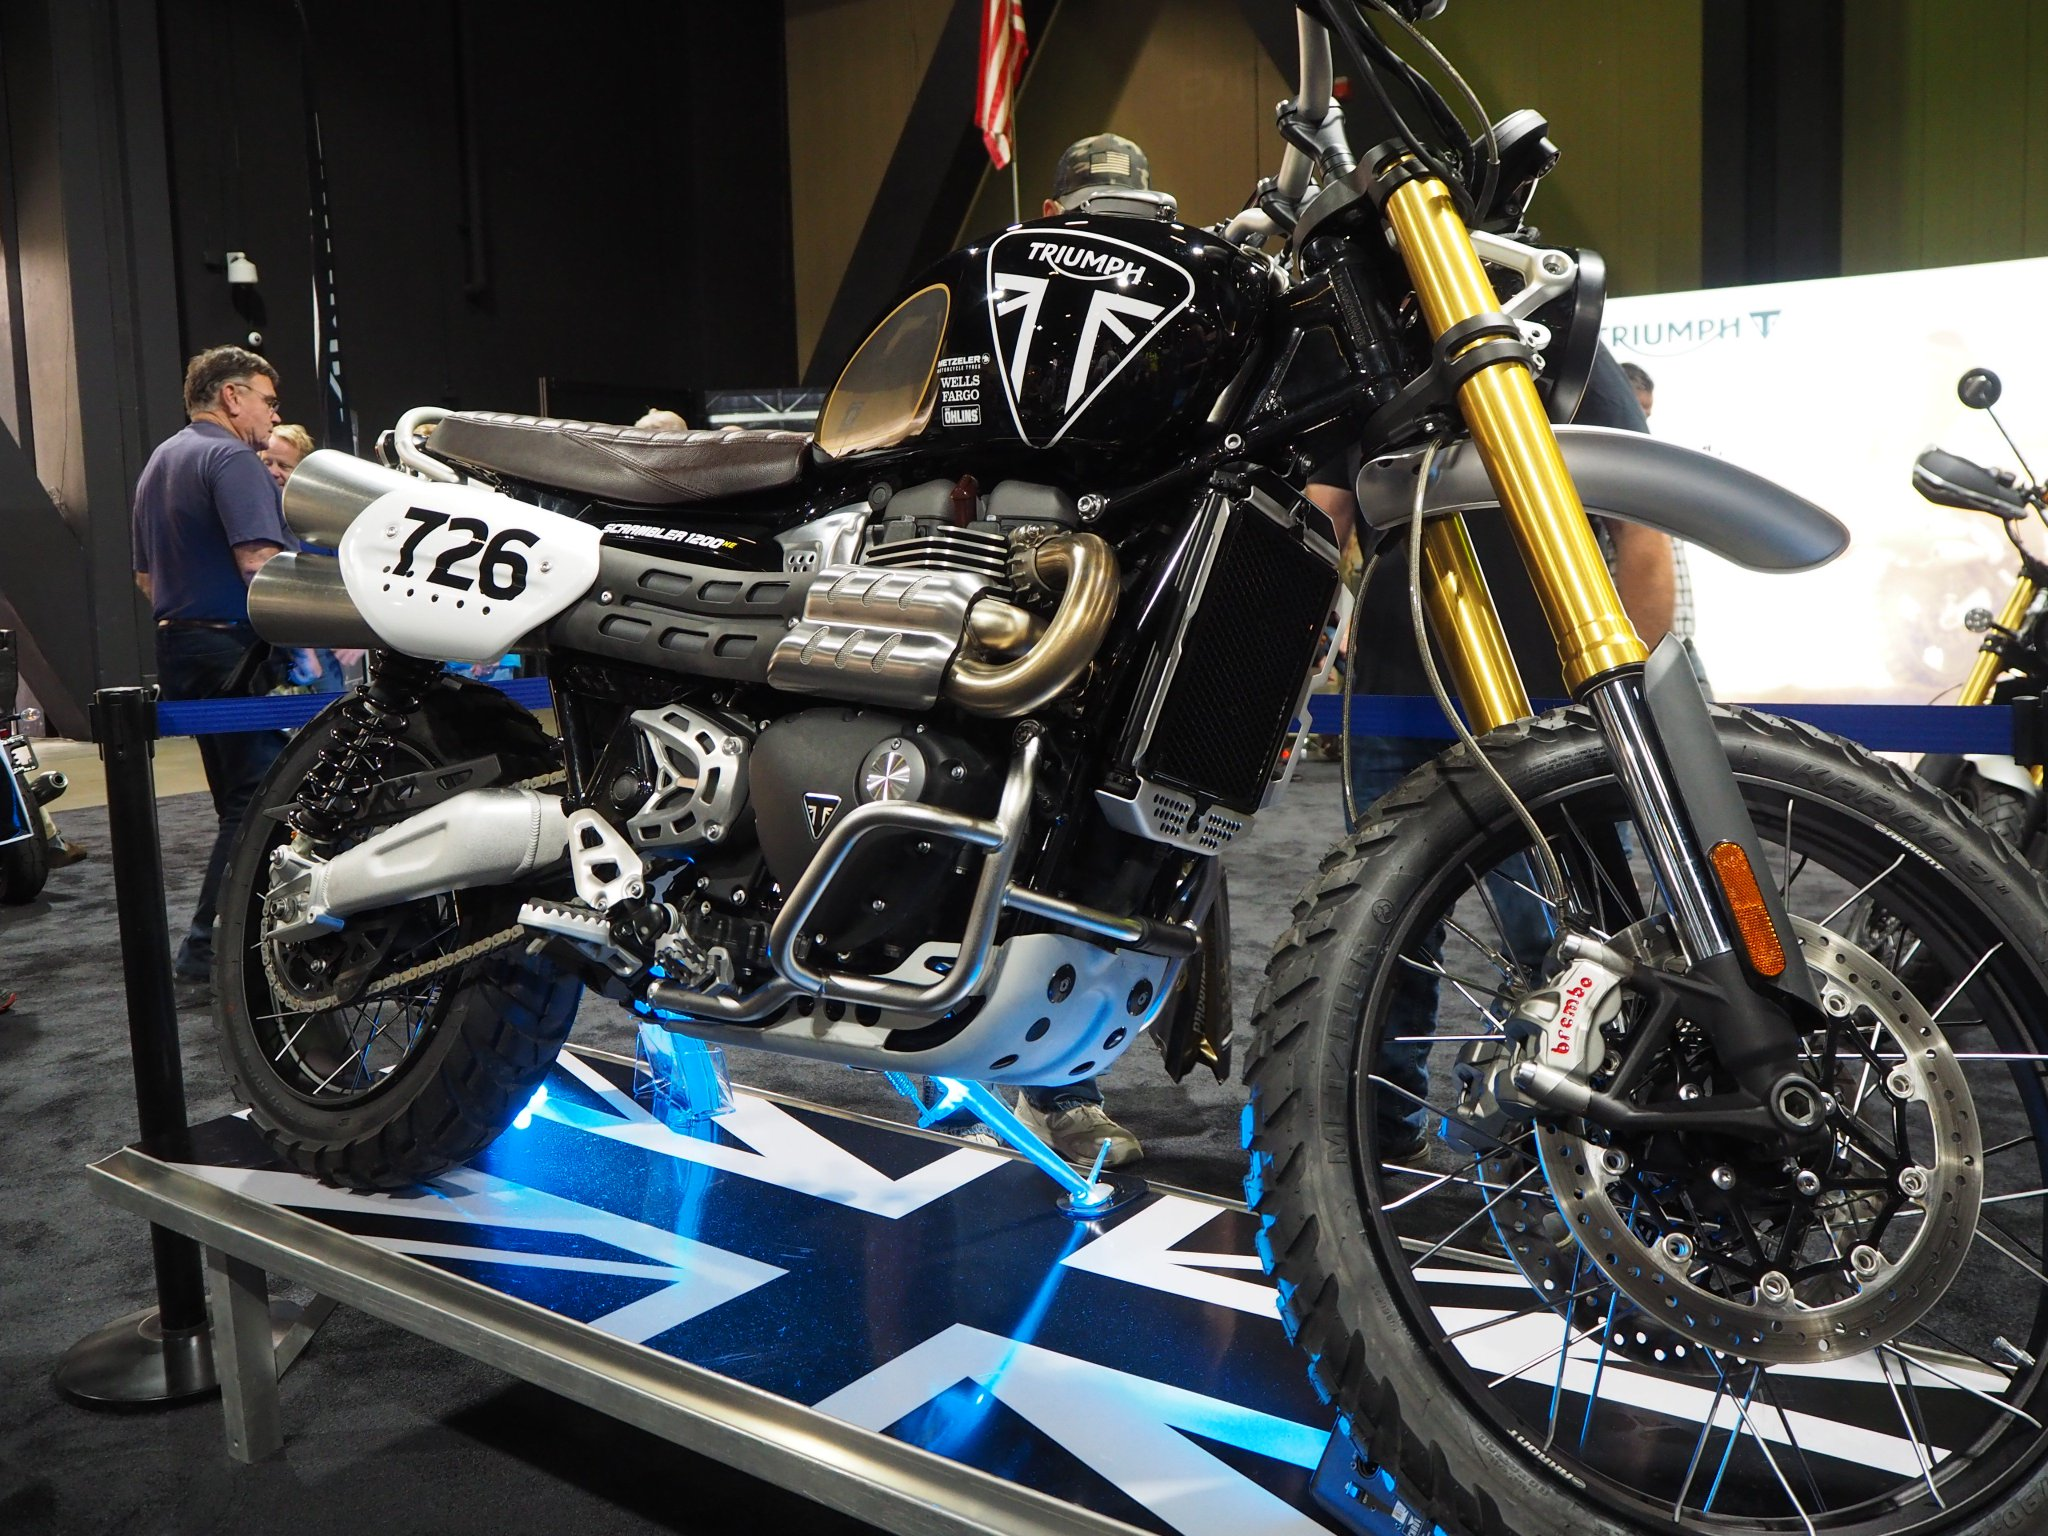 We are at Long Beach IMS all weekend! Be sure to be one of the very first see the all-new Scrambler 1200 and Baja Racer. https://t.co/CwHANRfzDl